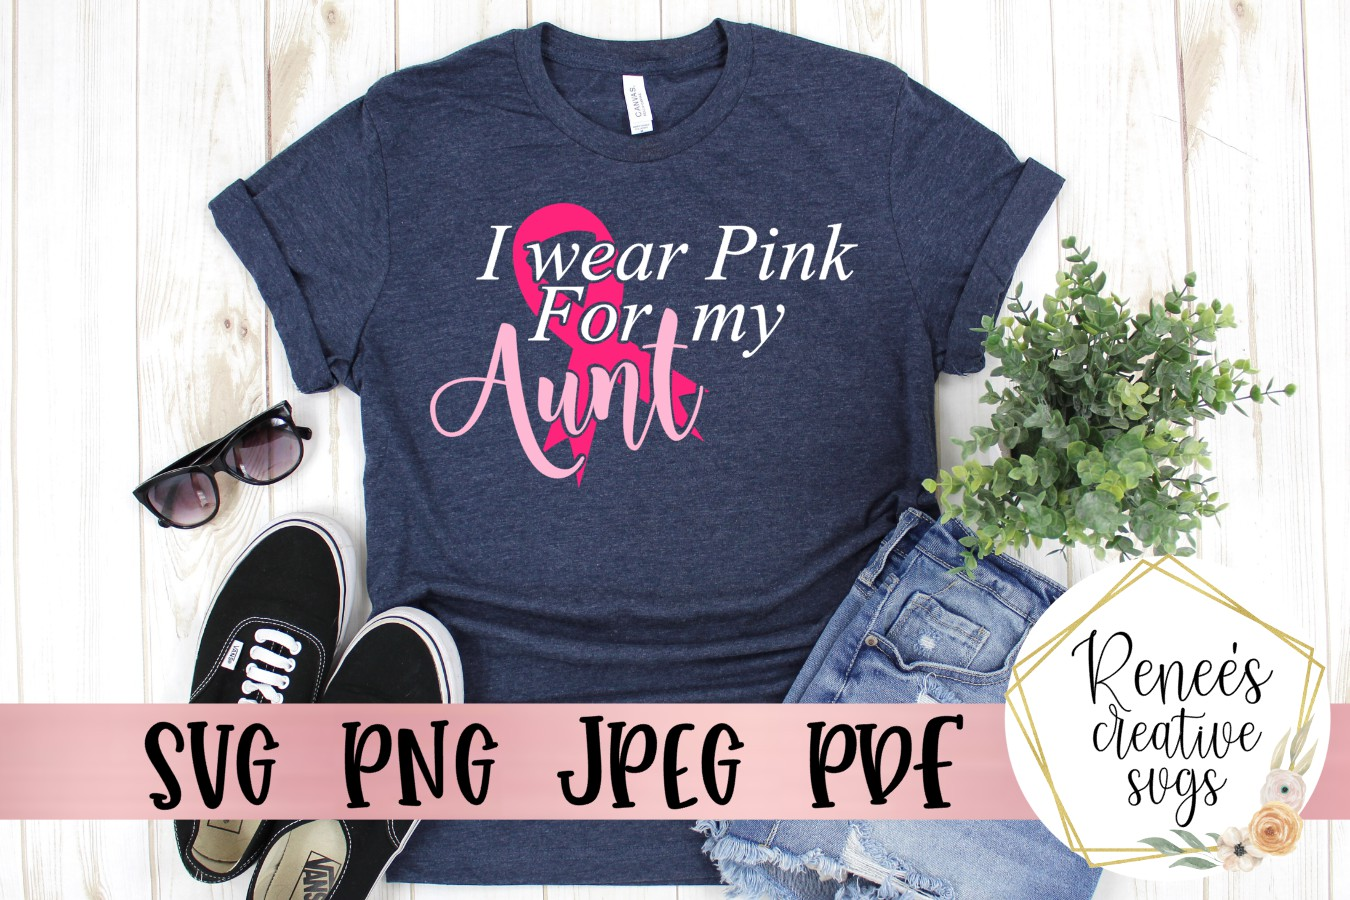 I wear pink for my aunt Breast cancer awareness SVG example image 1